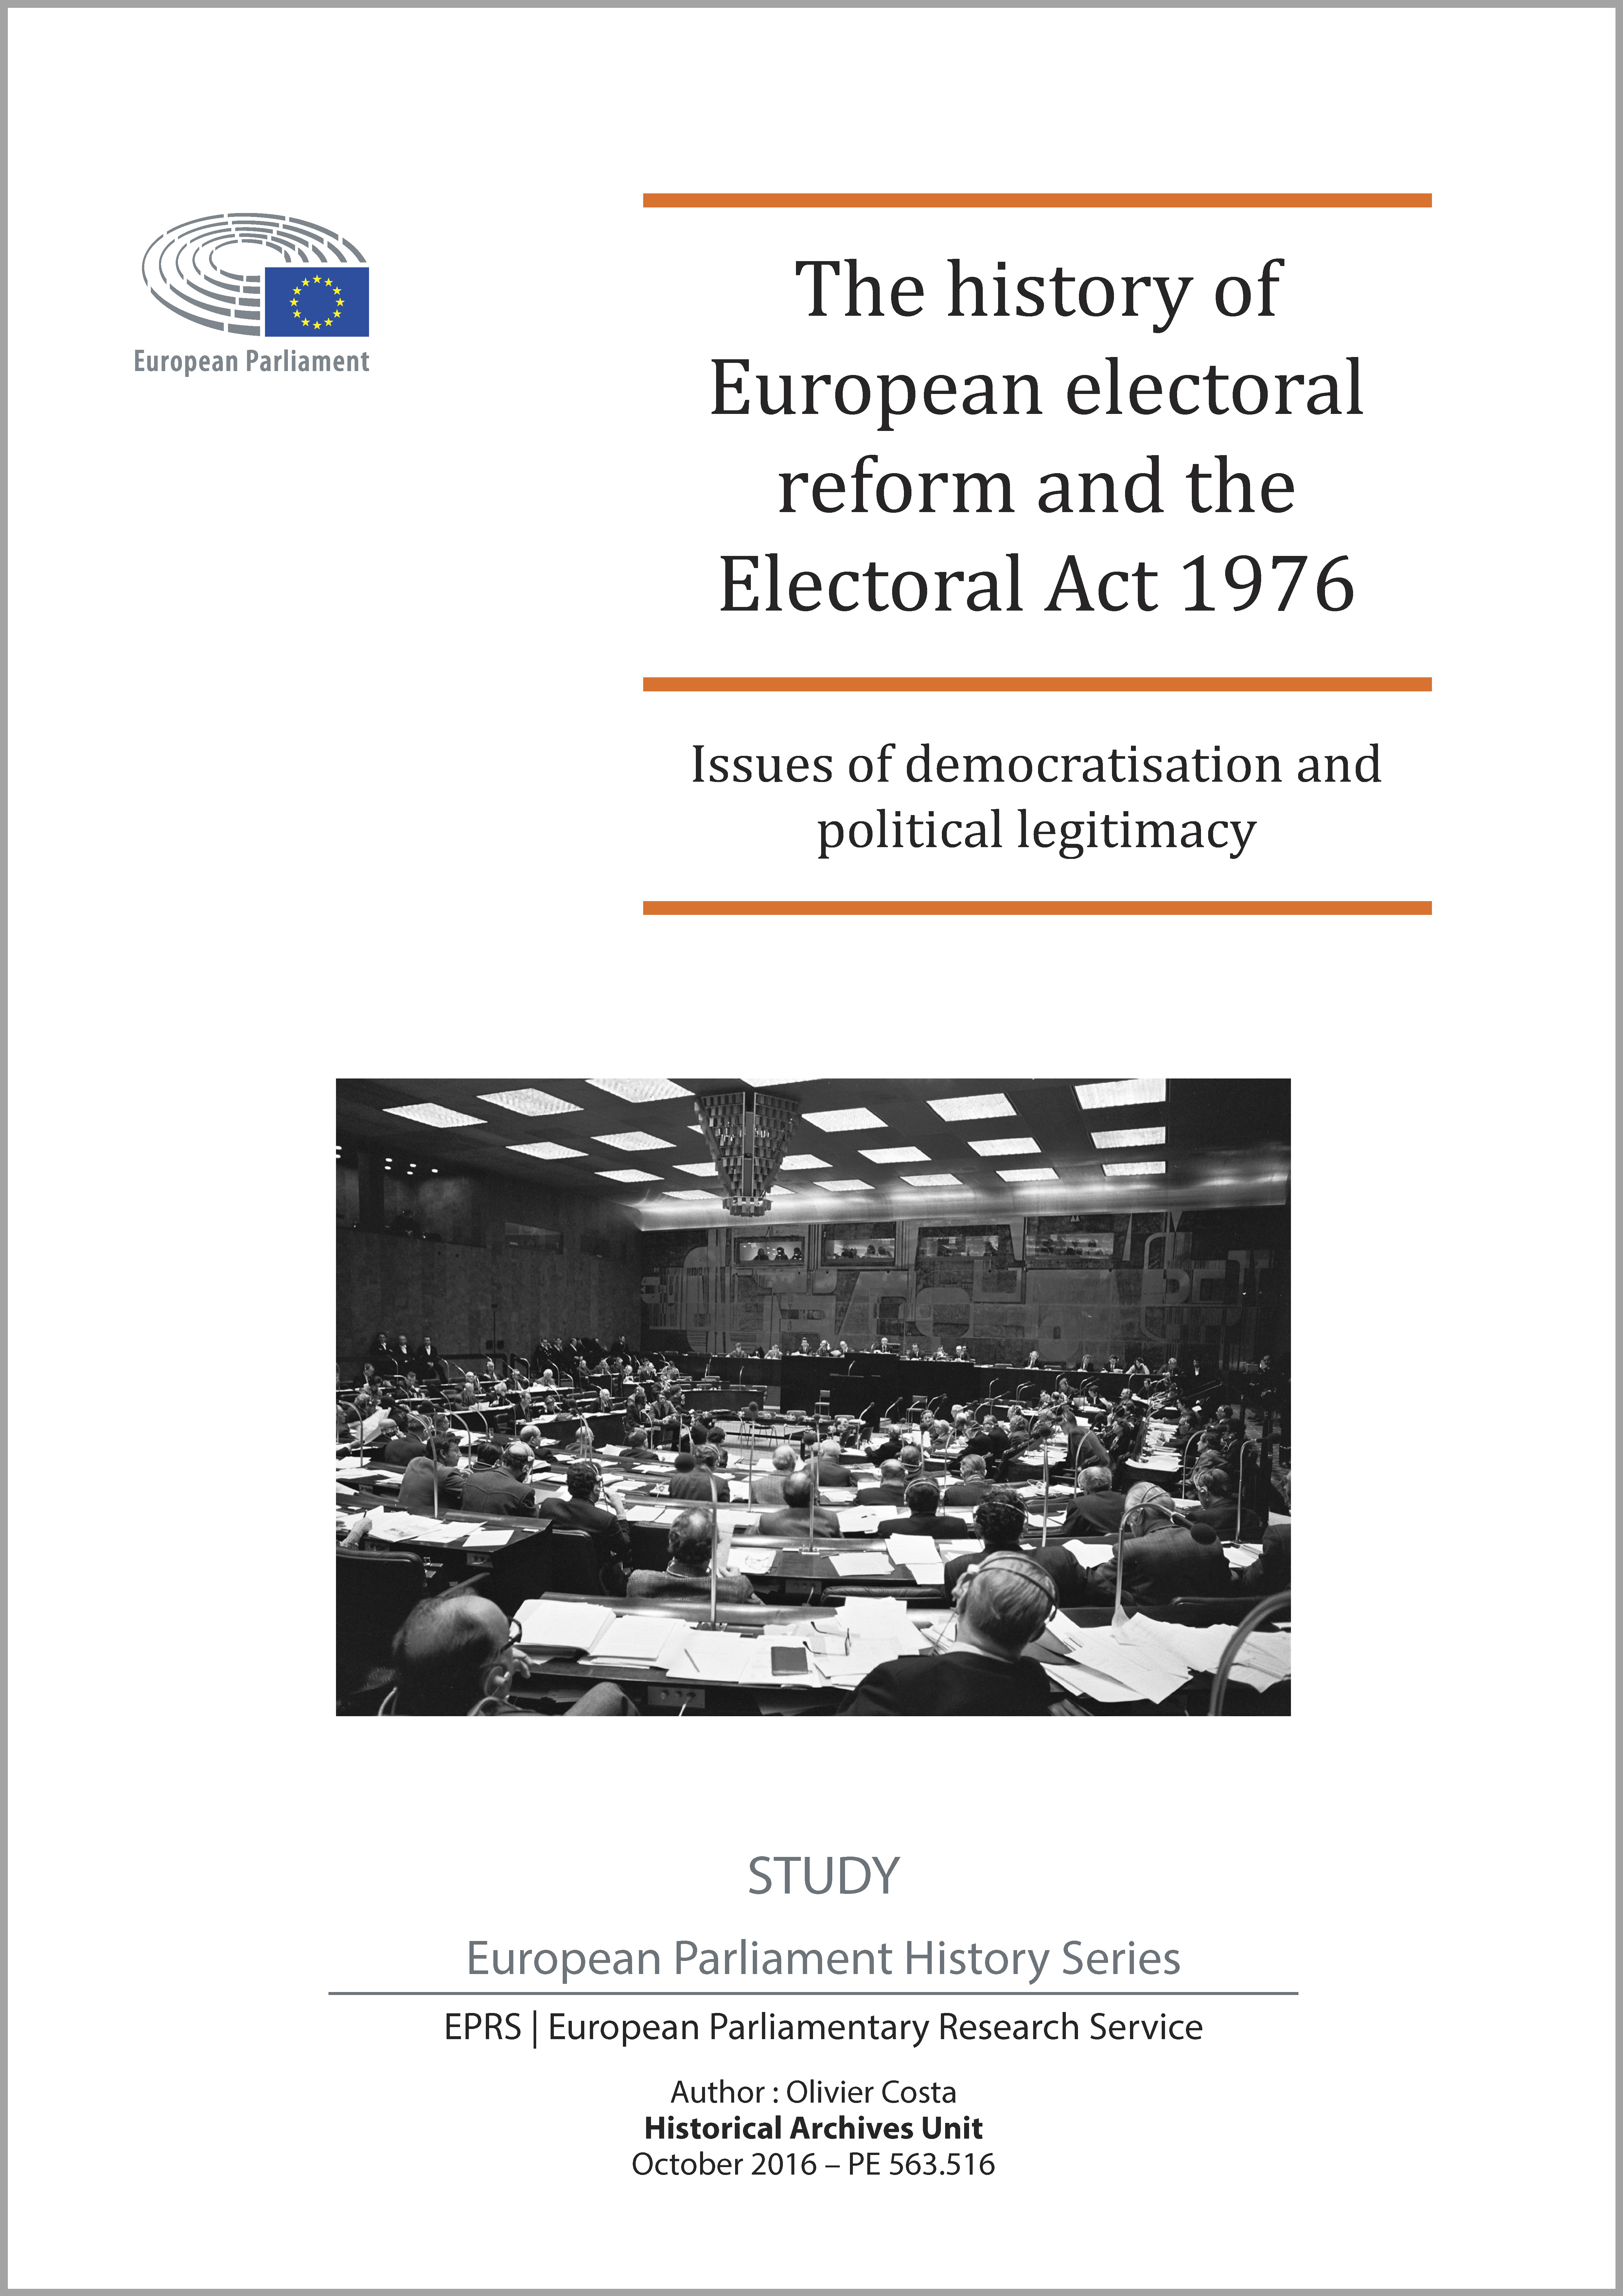 The history of European electoral reform and the Electoral Act